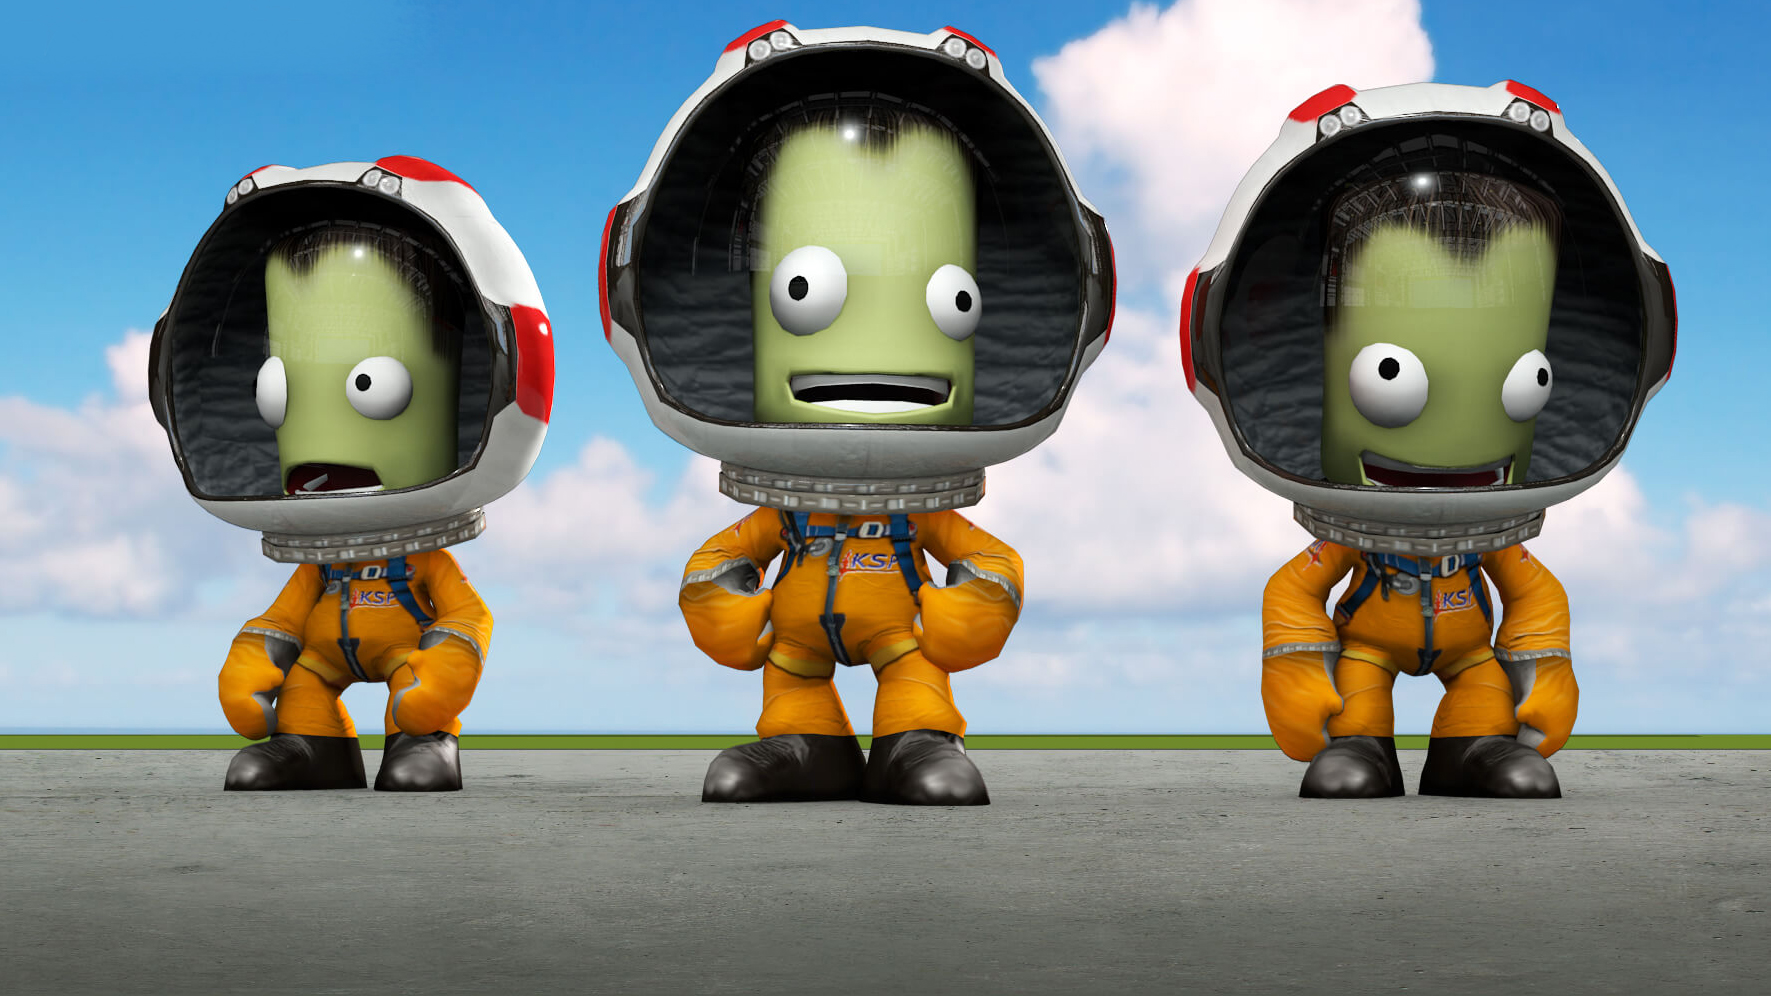 Great moments in PC gaming: Finally landing on the Mun in Kerbal